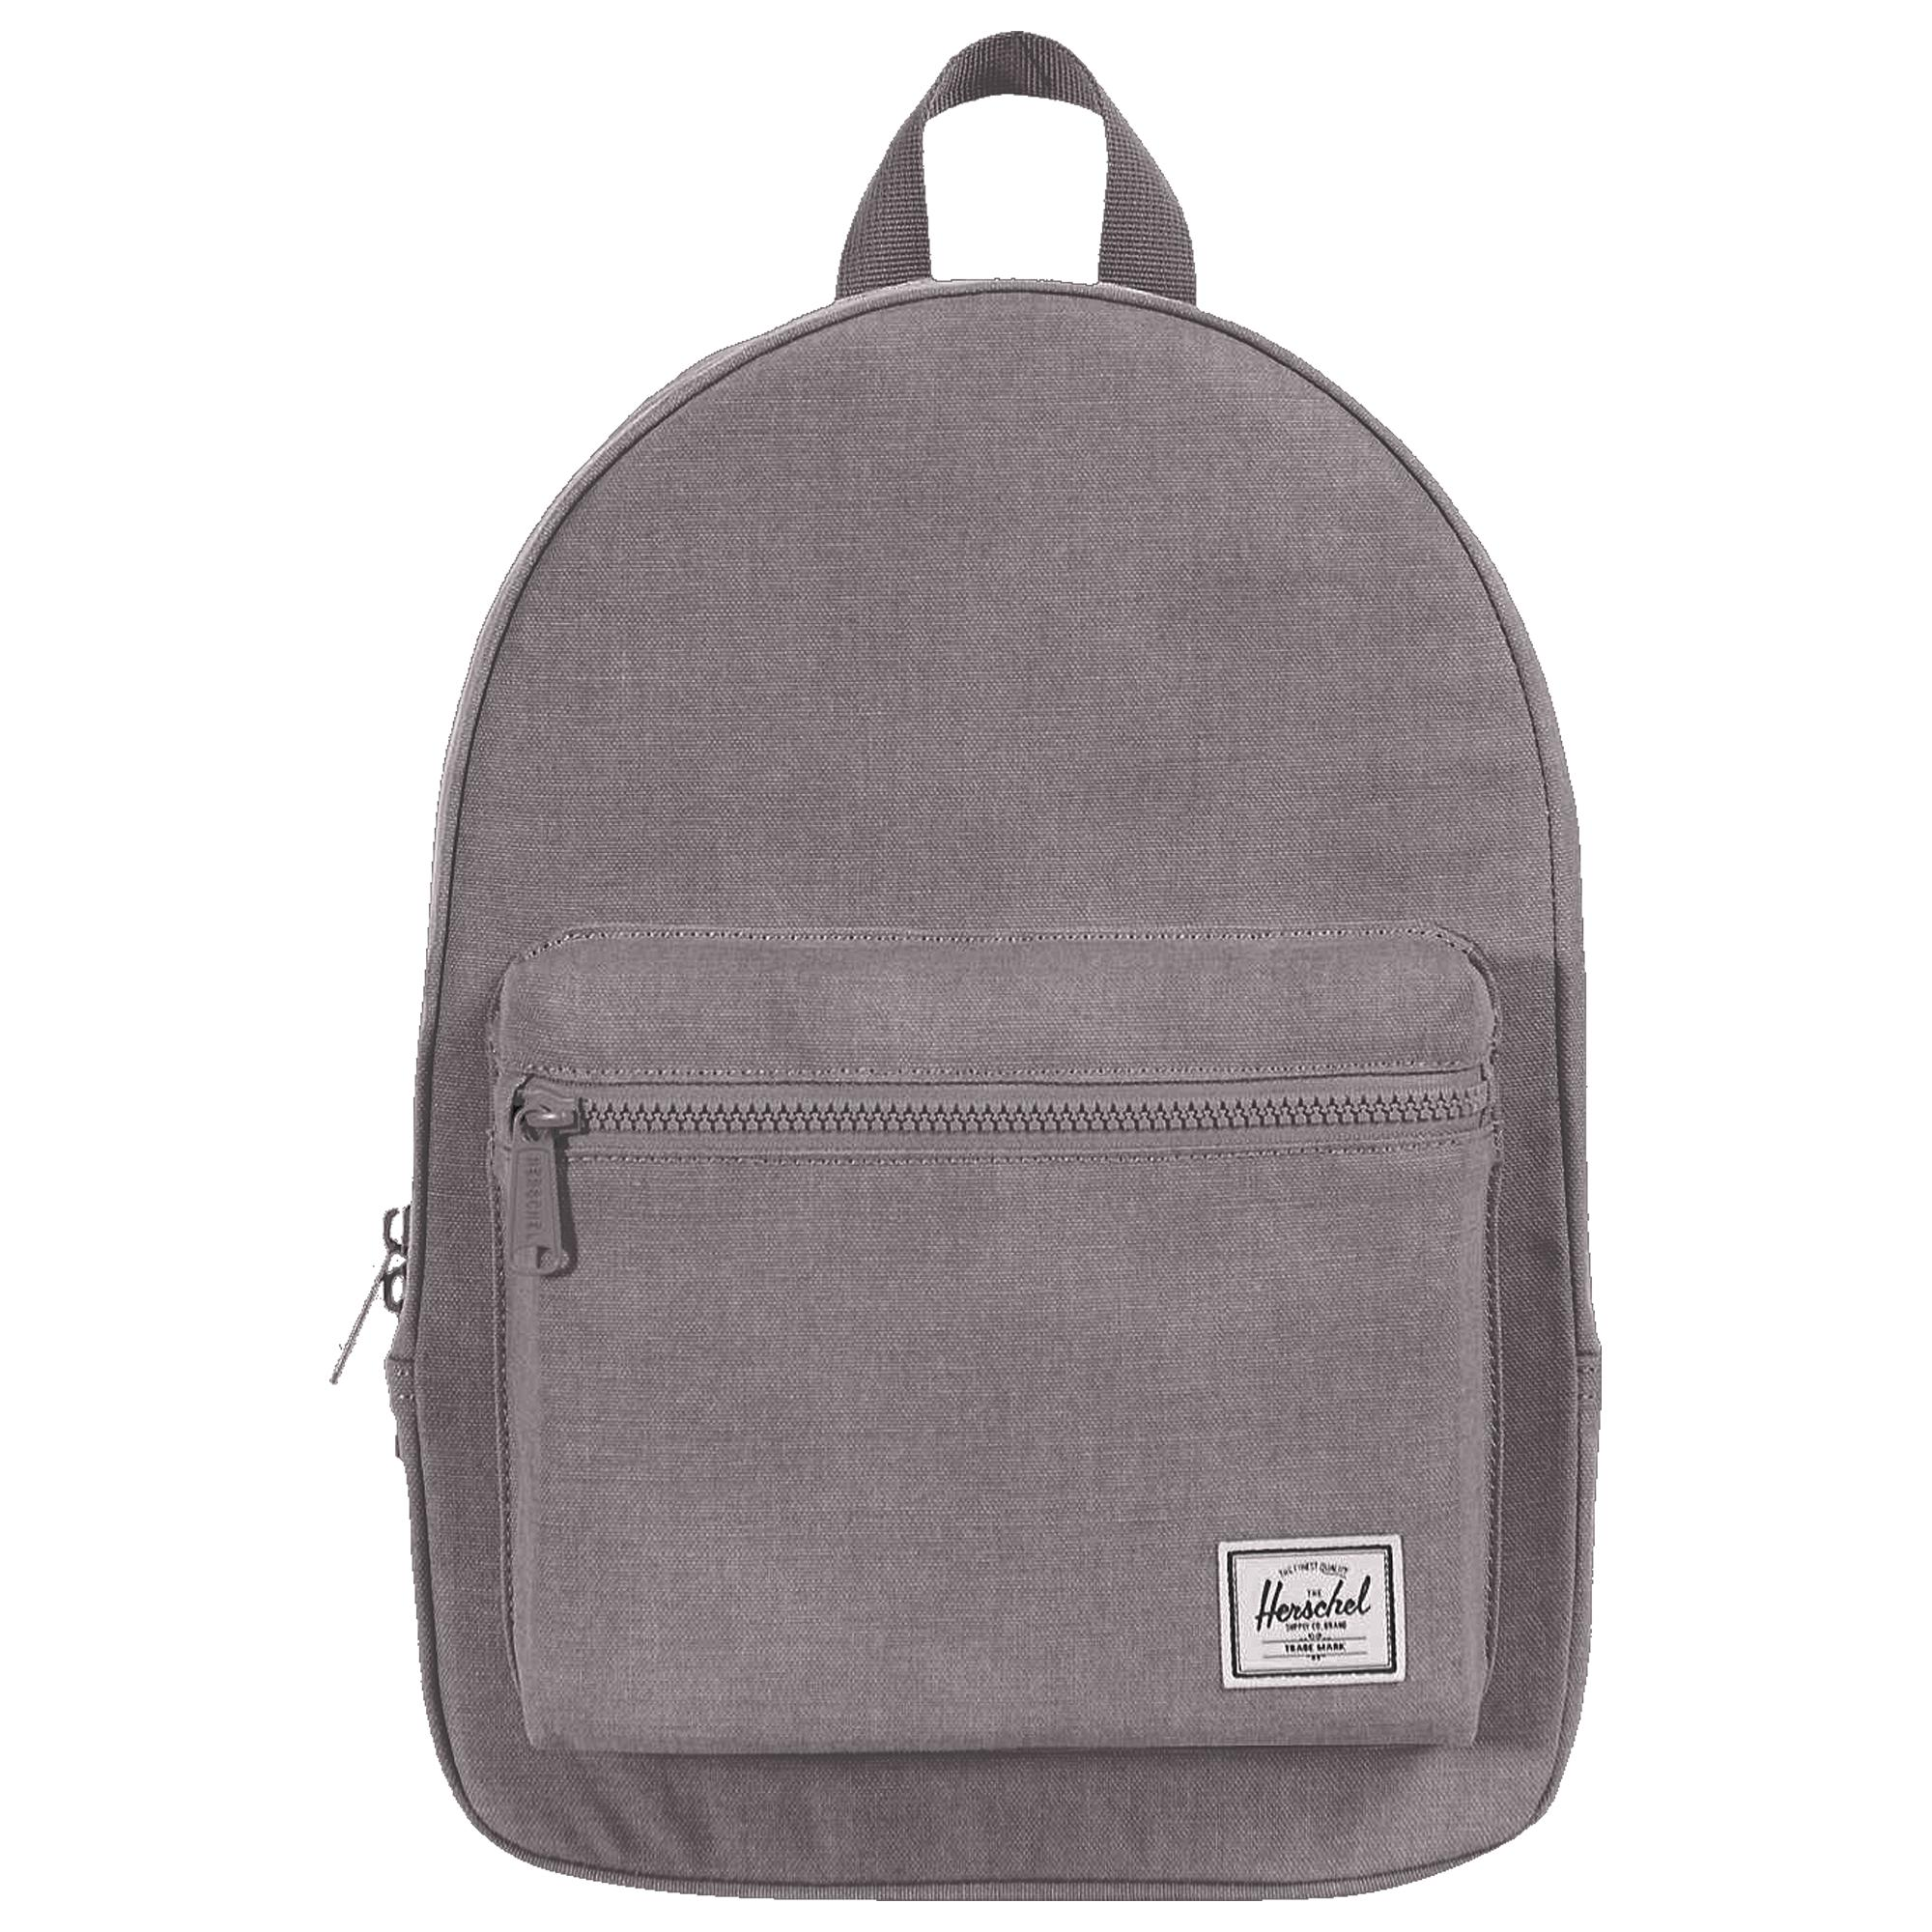 fcef90f1ae10 Lyst - Herschel Supply Co. Grove Xs Backpack in Gray - Save 48%